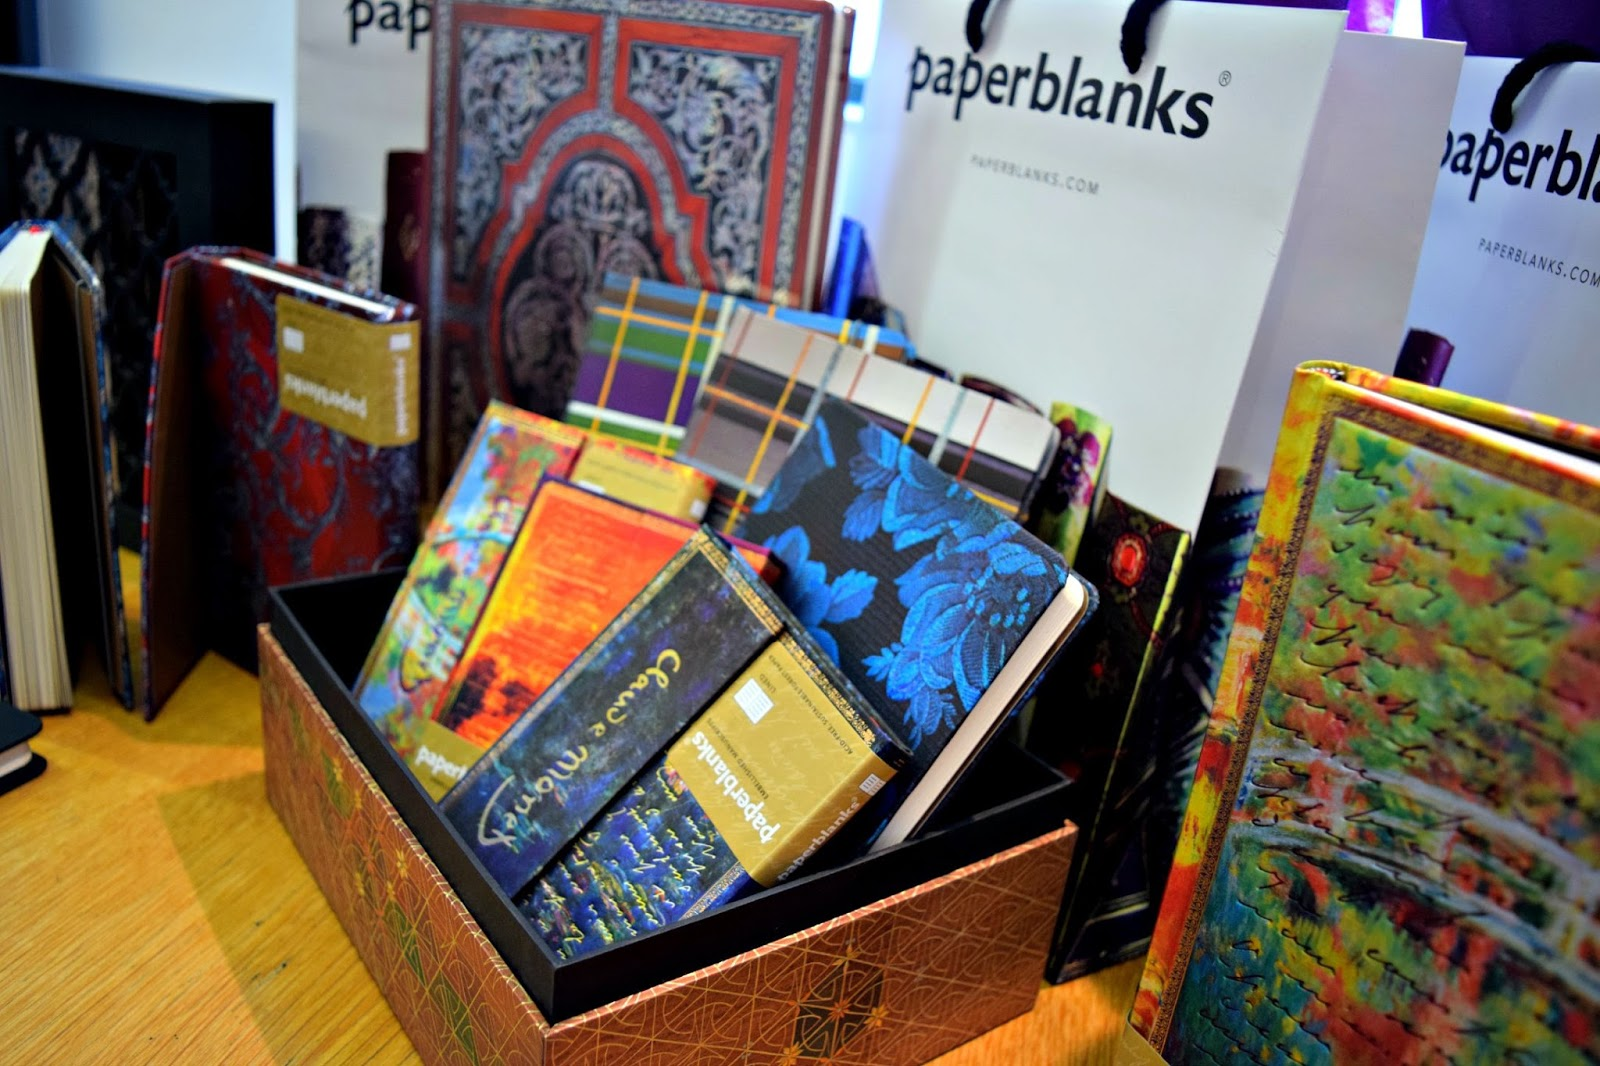 Paperblanks AW15/16 collection